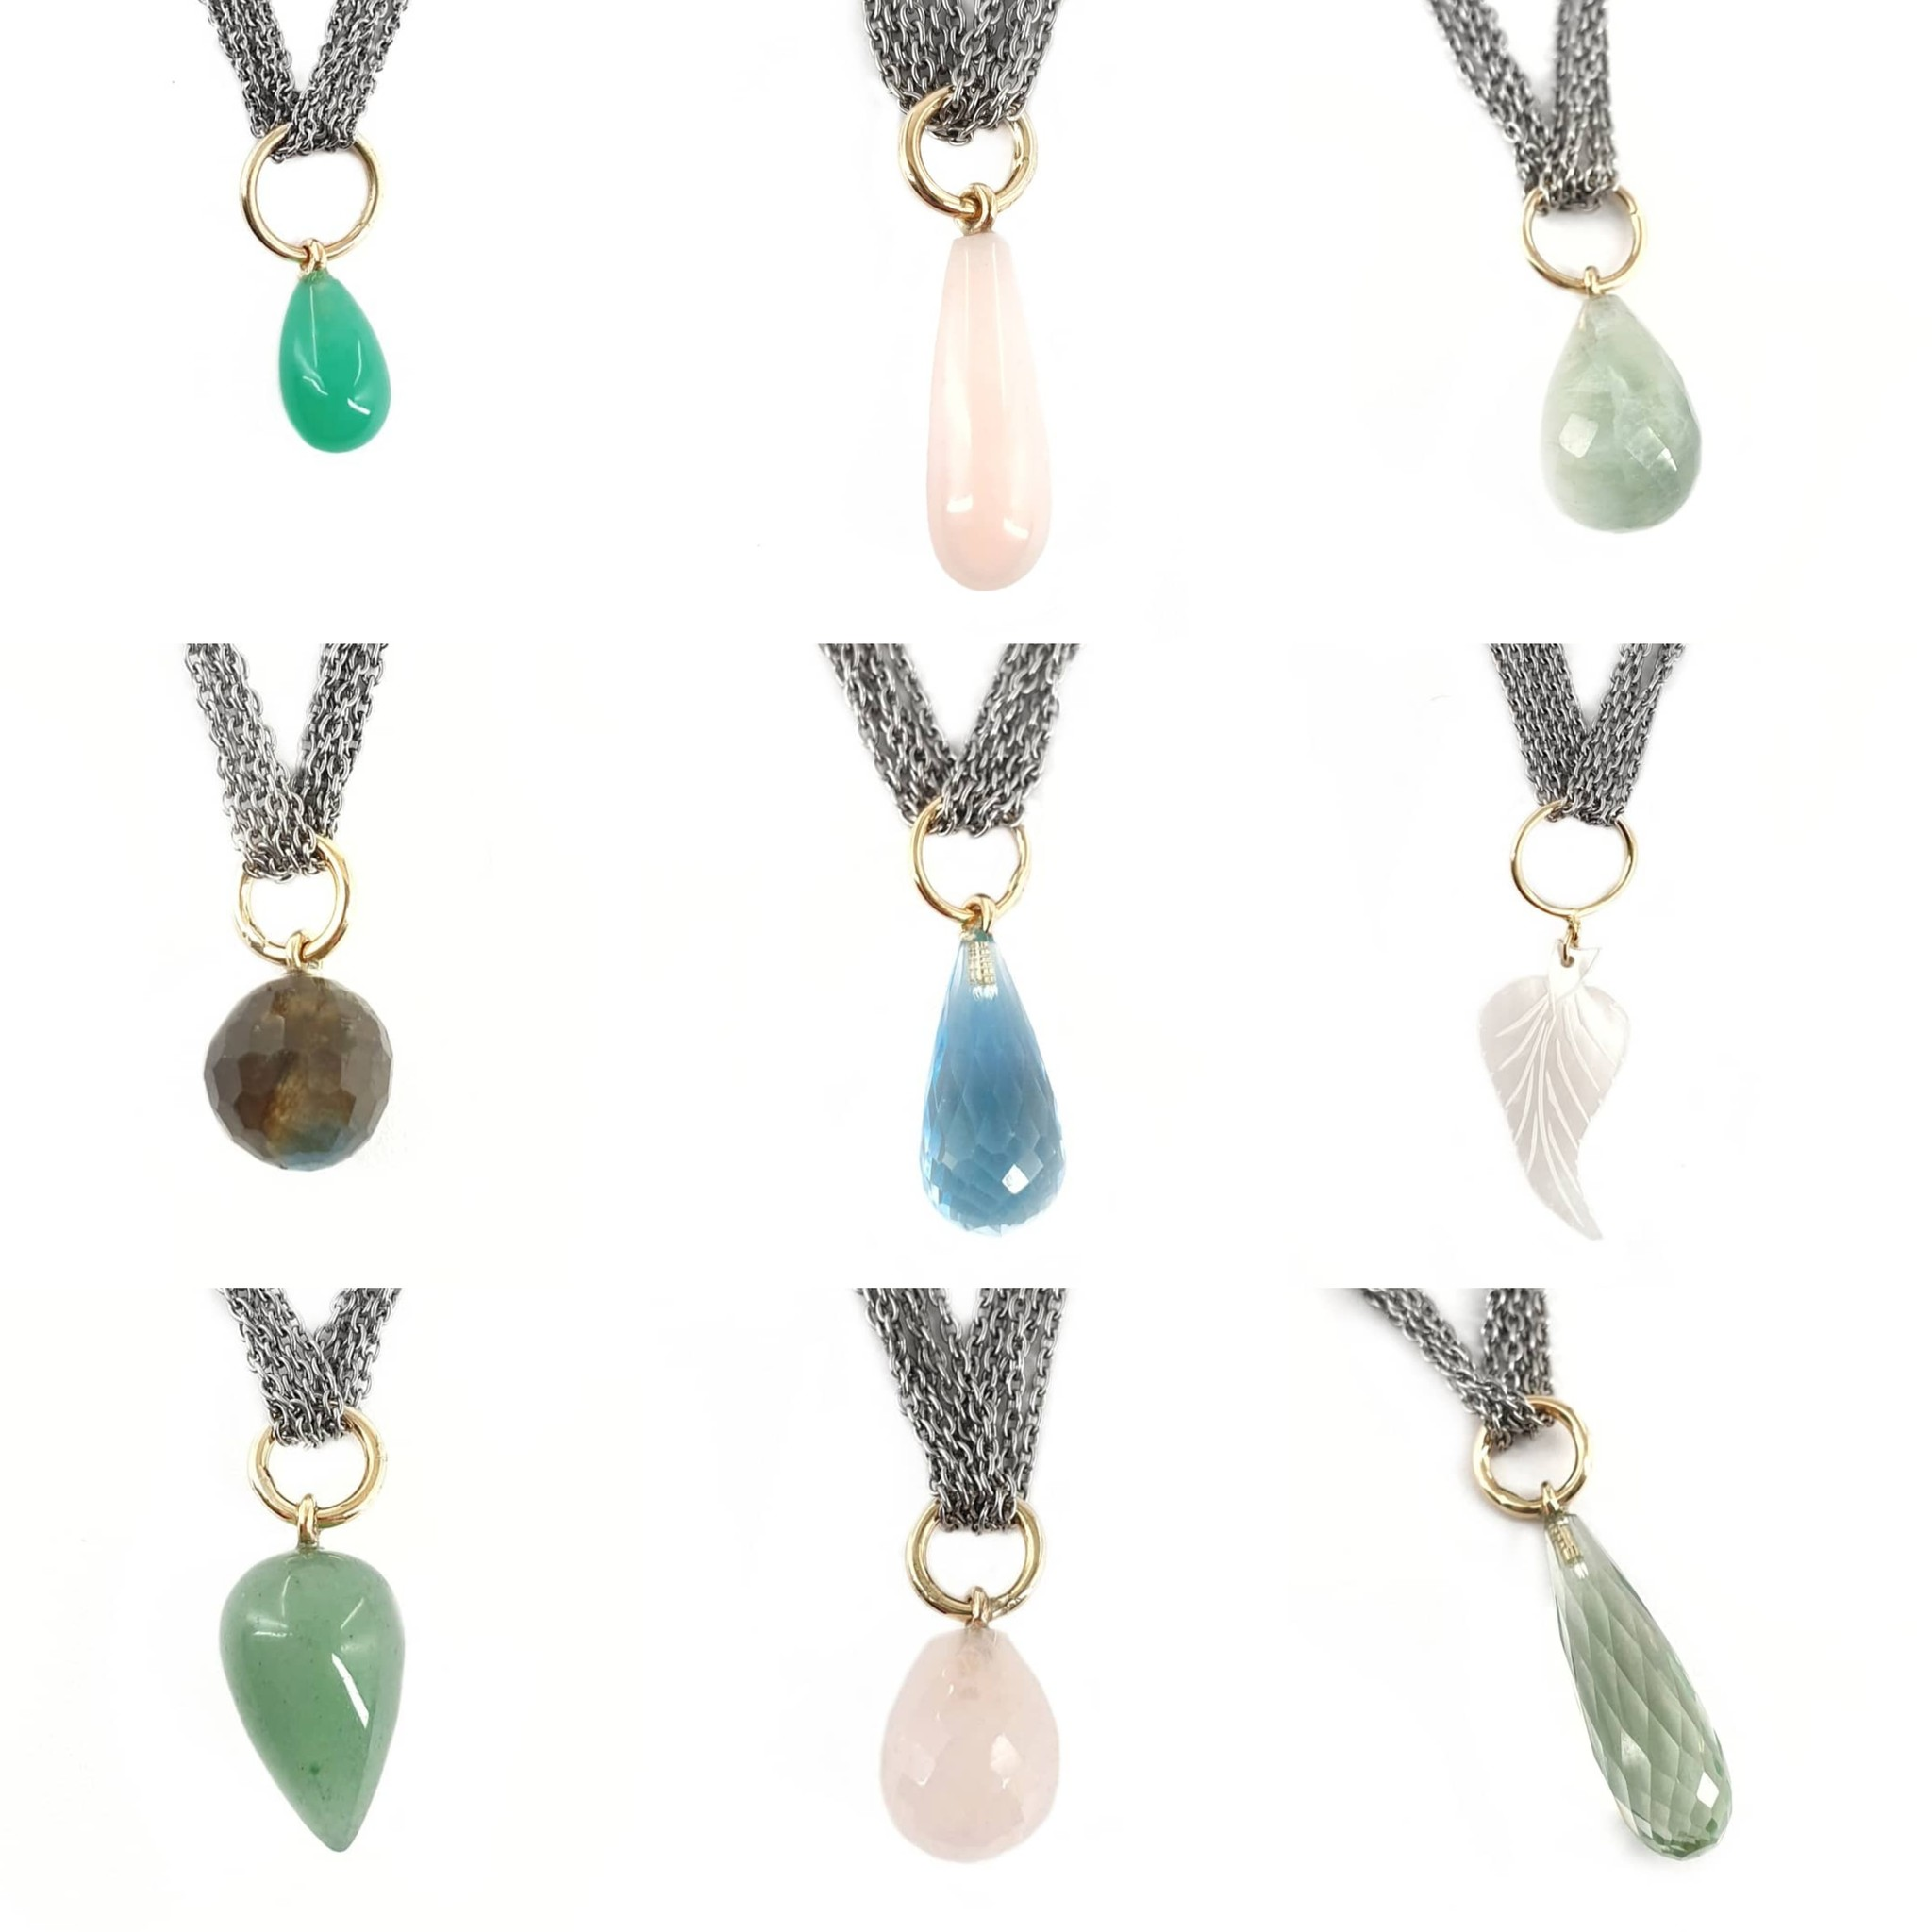 G.S.E. Pendants stones and pearls